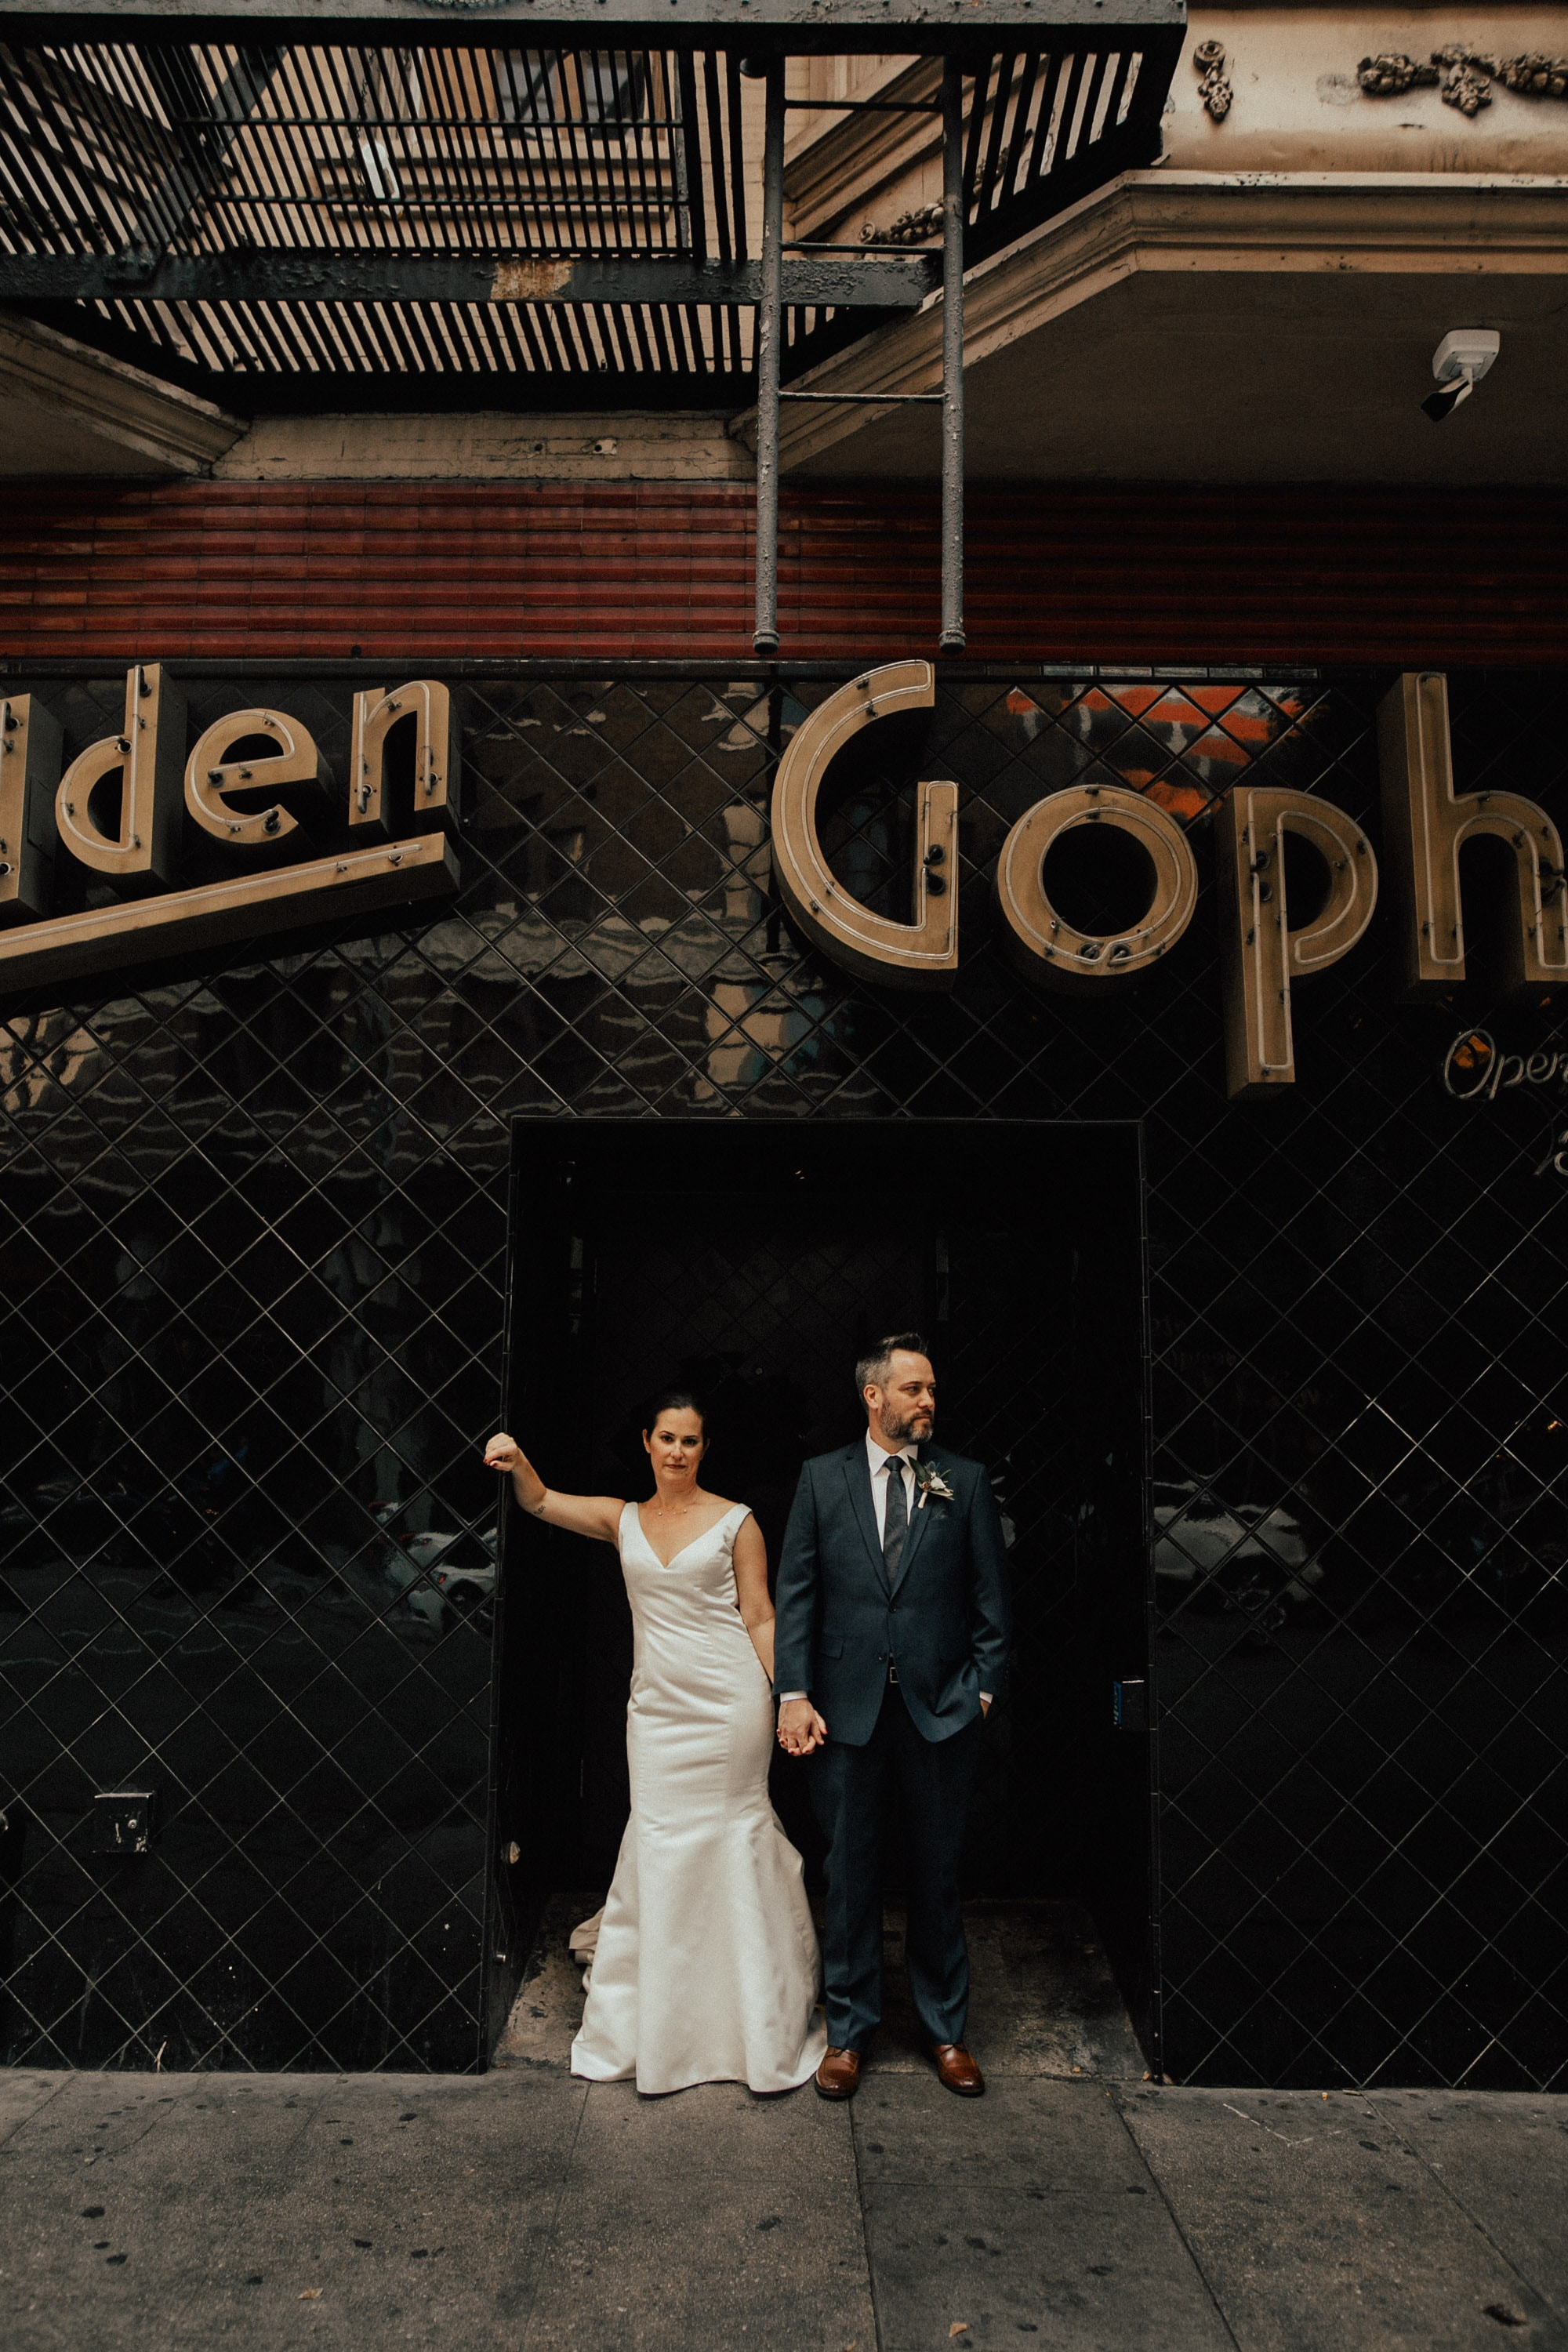 wedding portrait outside of the golden gopher